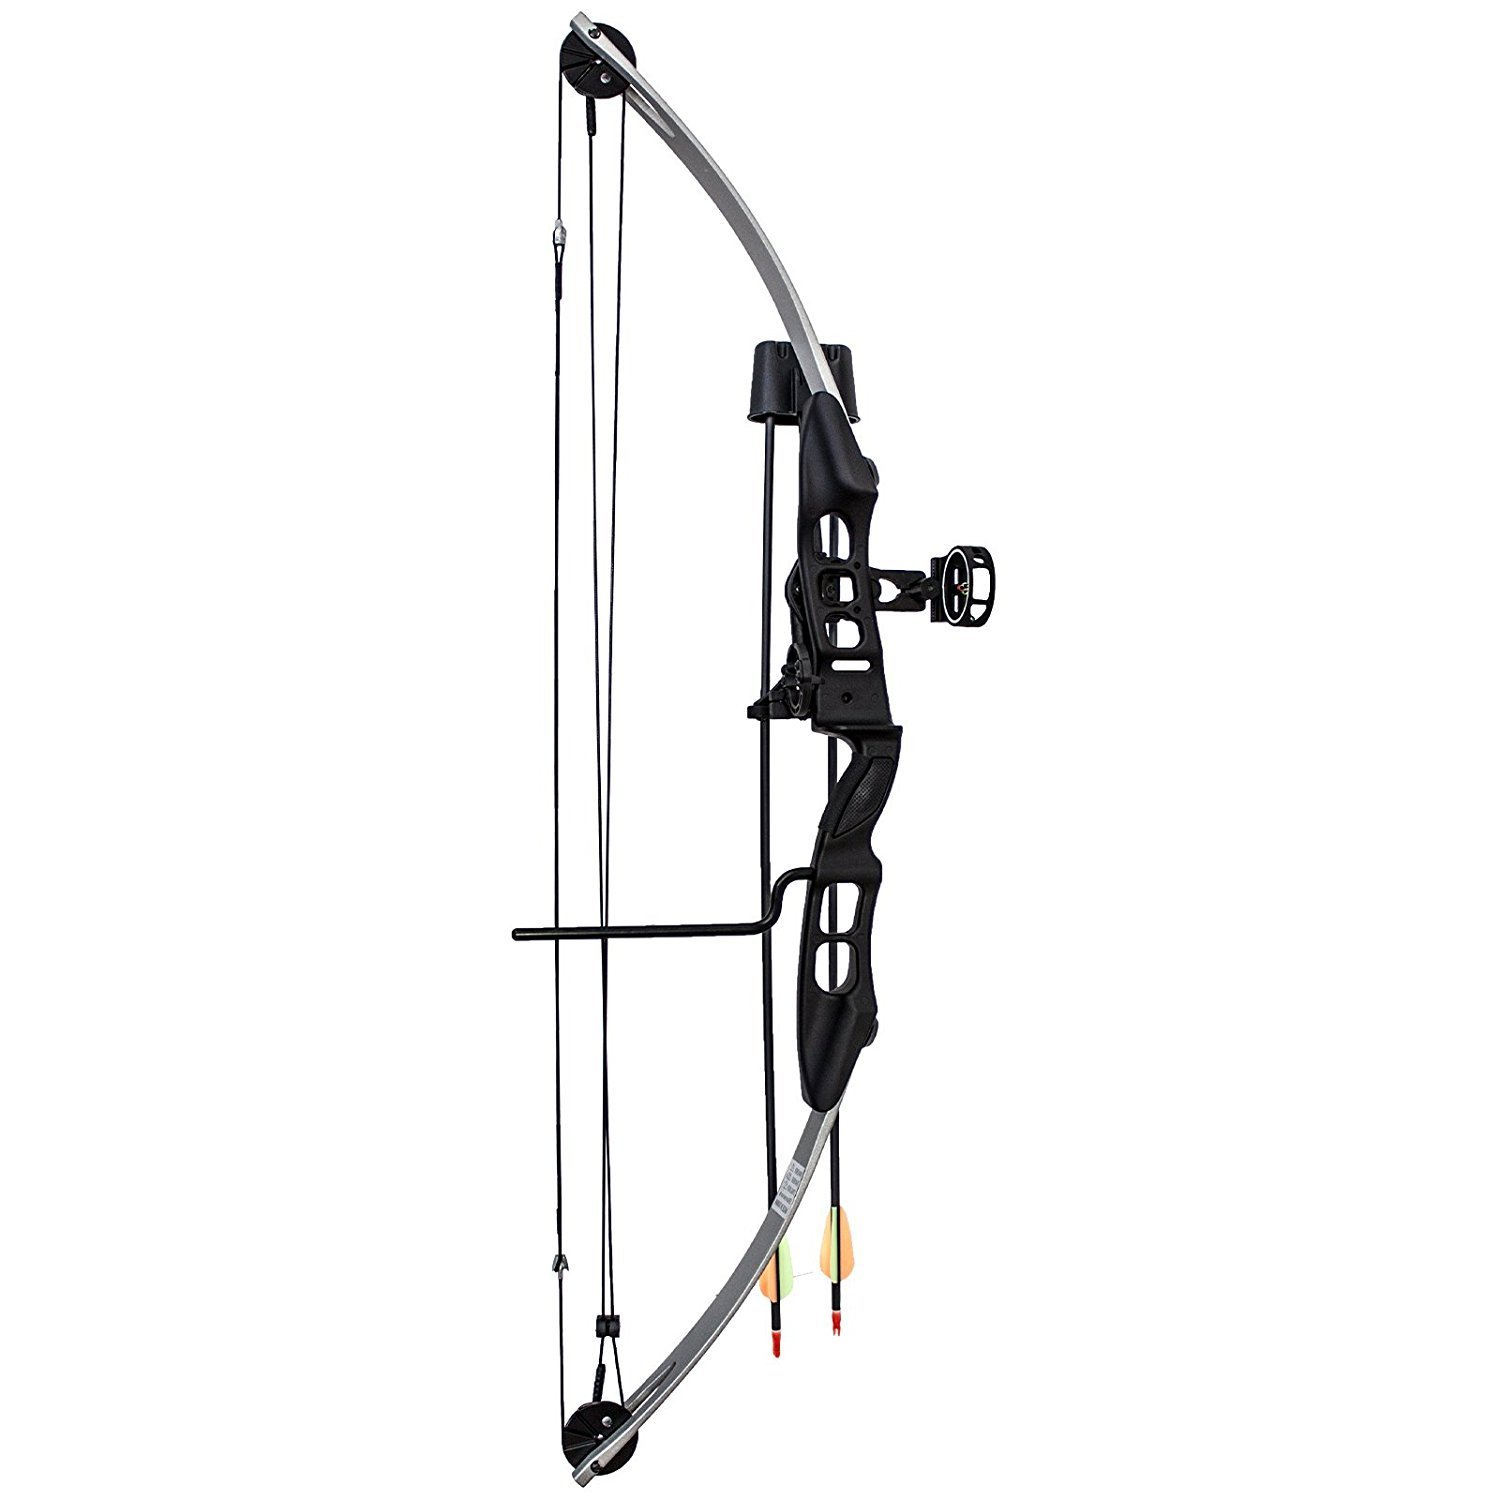 5. SAS Sergeant Compound Bow Package